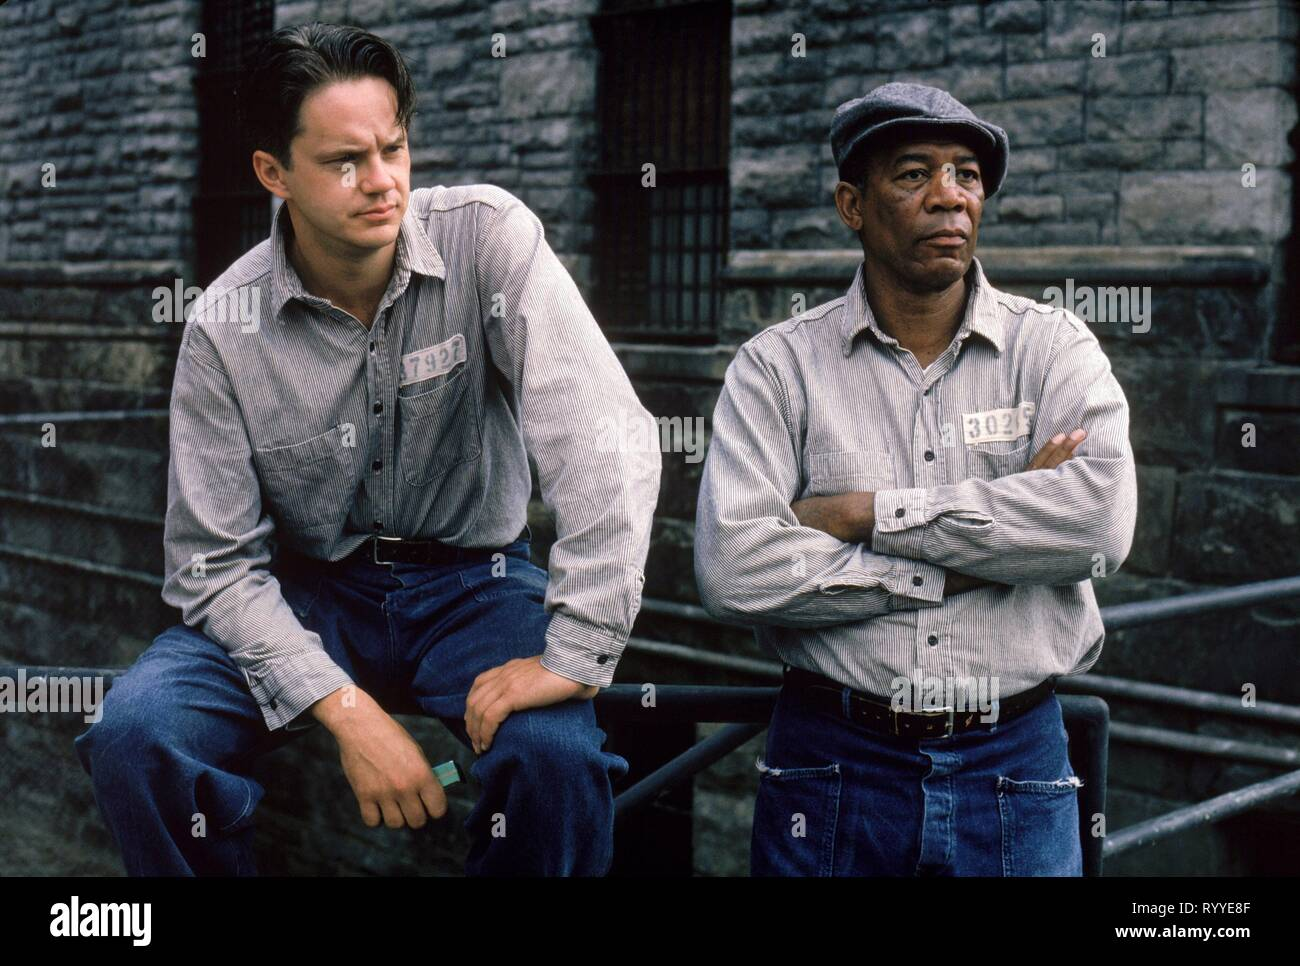 ROBBINS,FREEMAN, THE SHAWSHANK REDEMPTION, 1994 - Stock Image